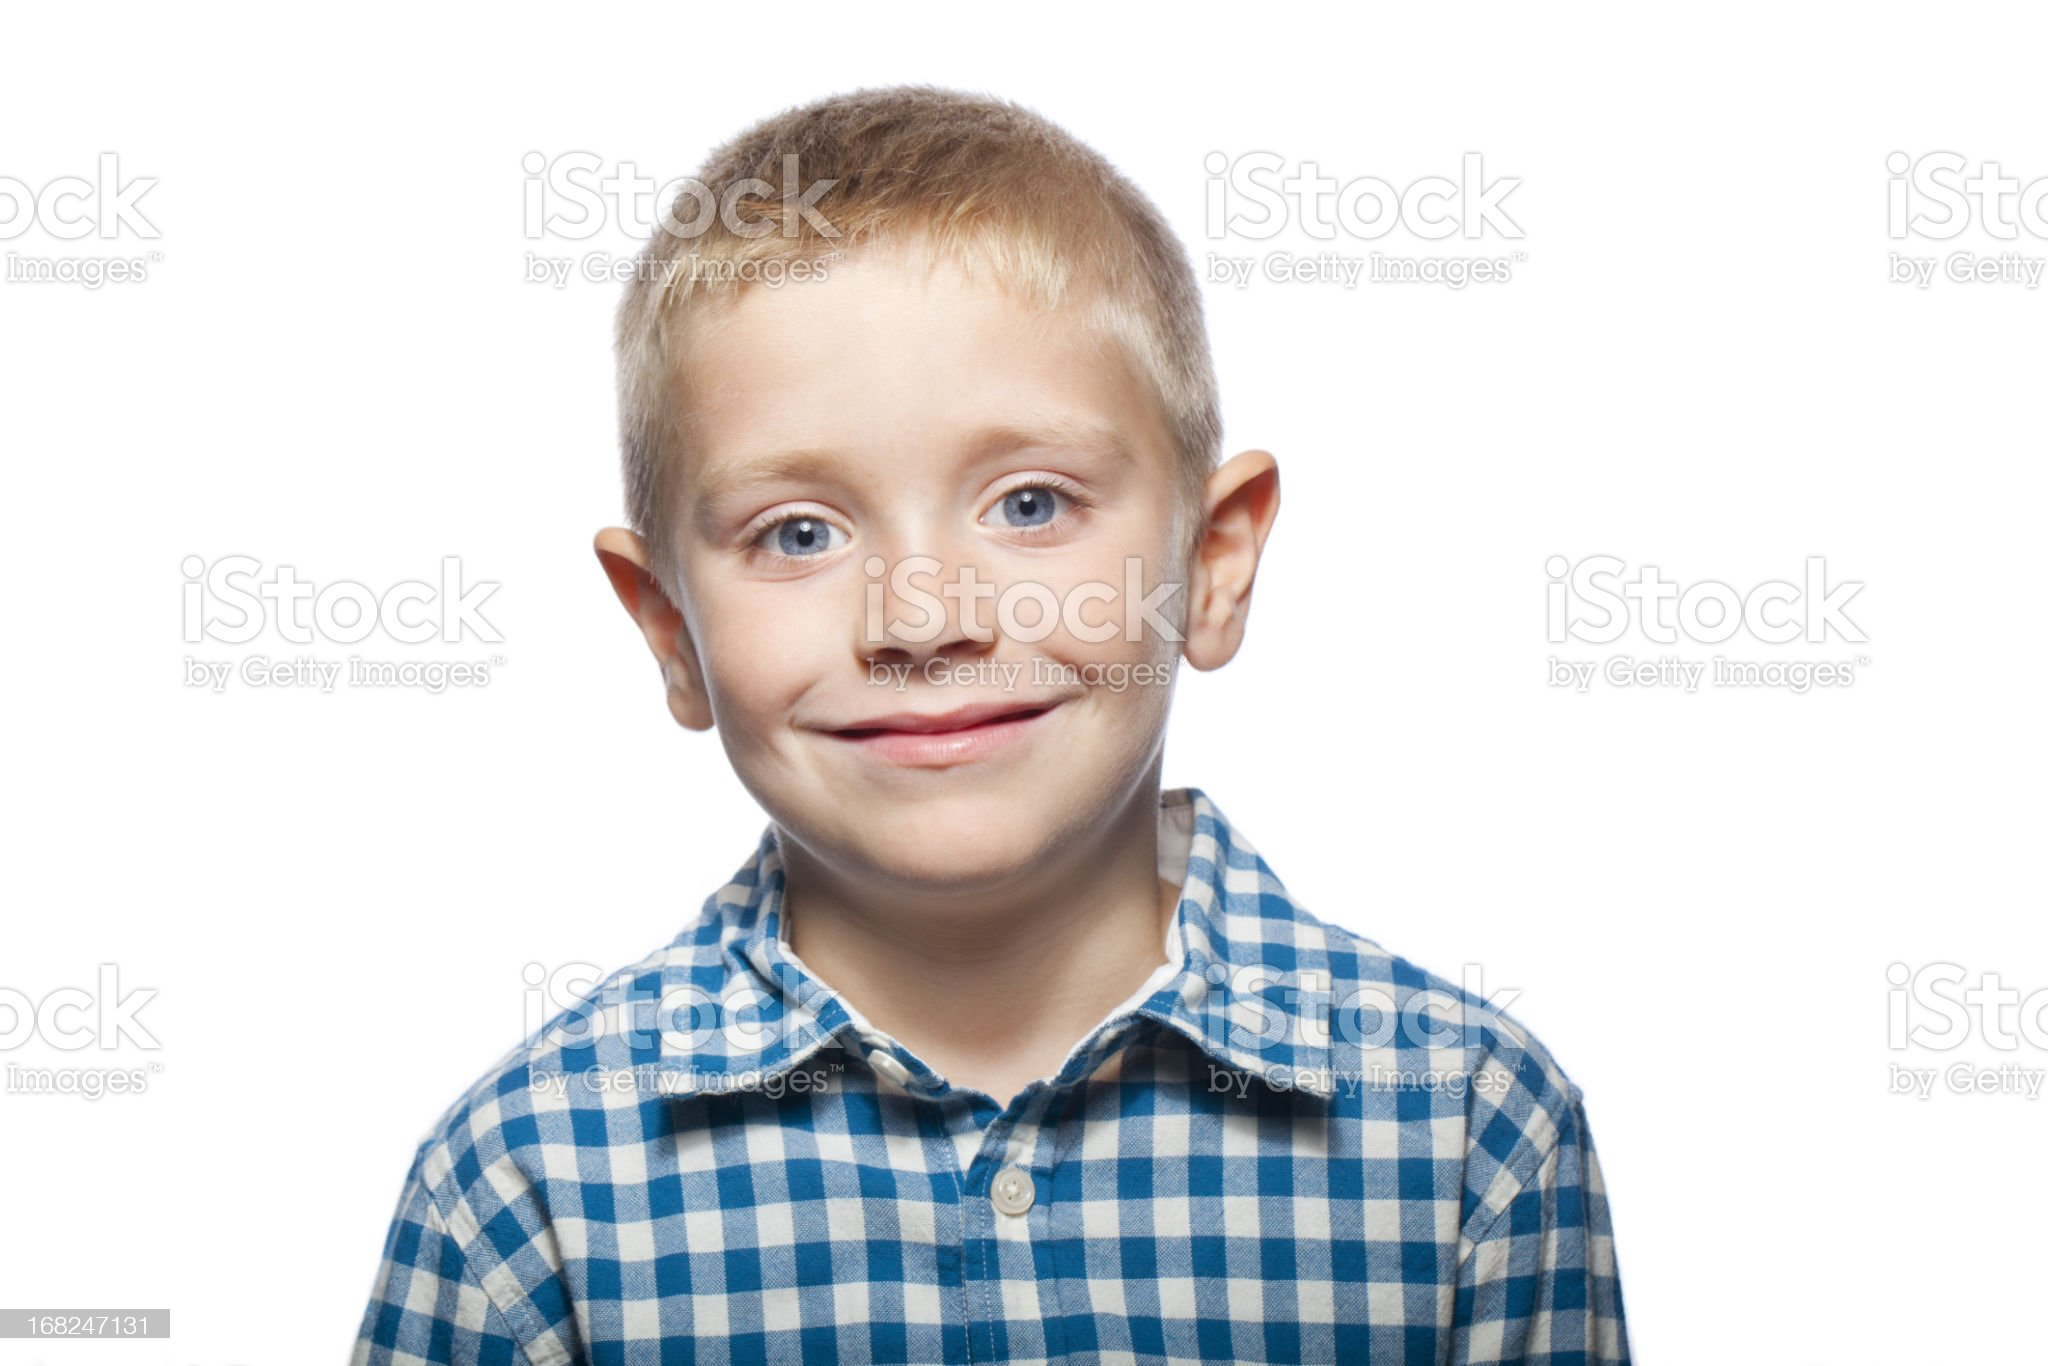 Portrait of a child royalty-free stock photo